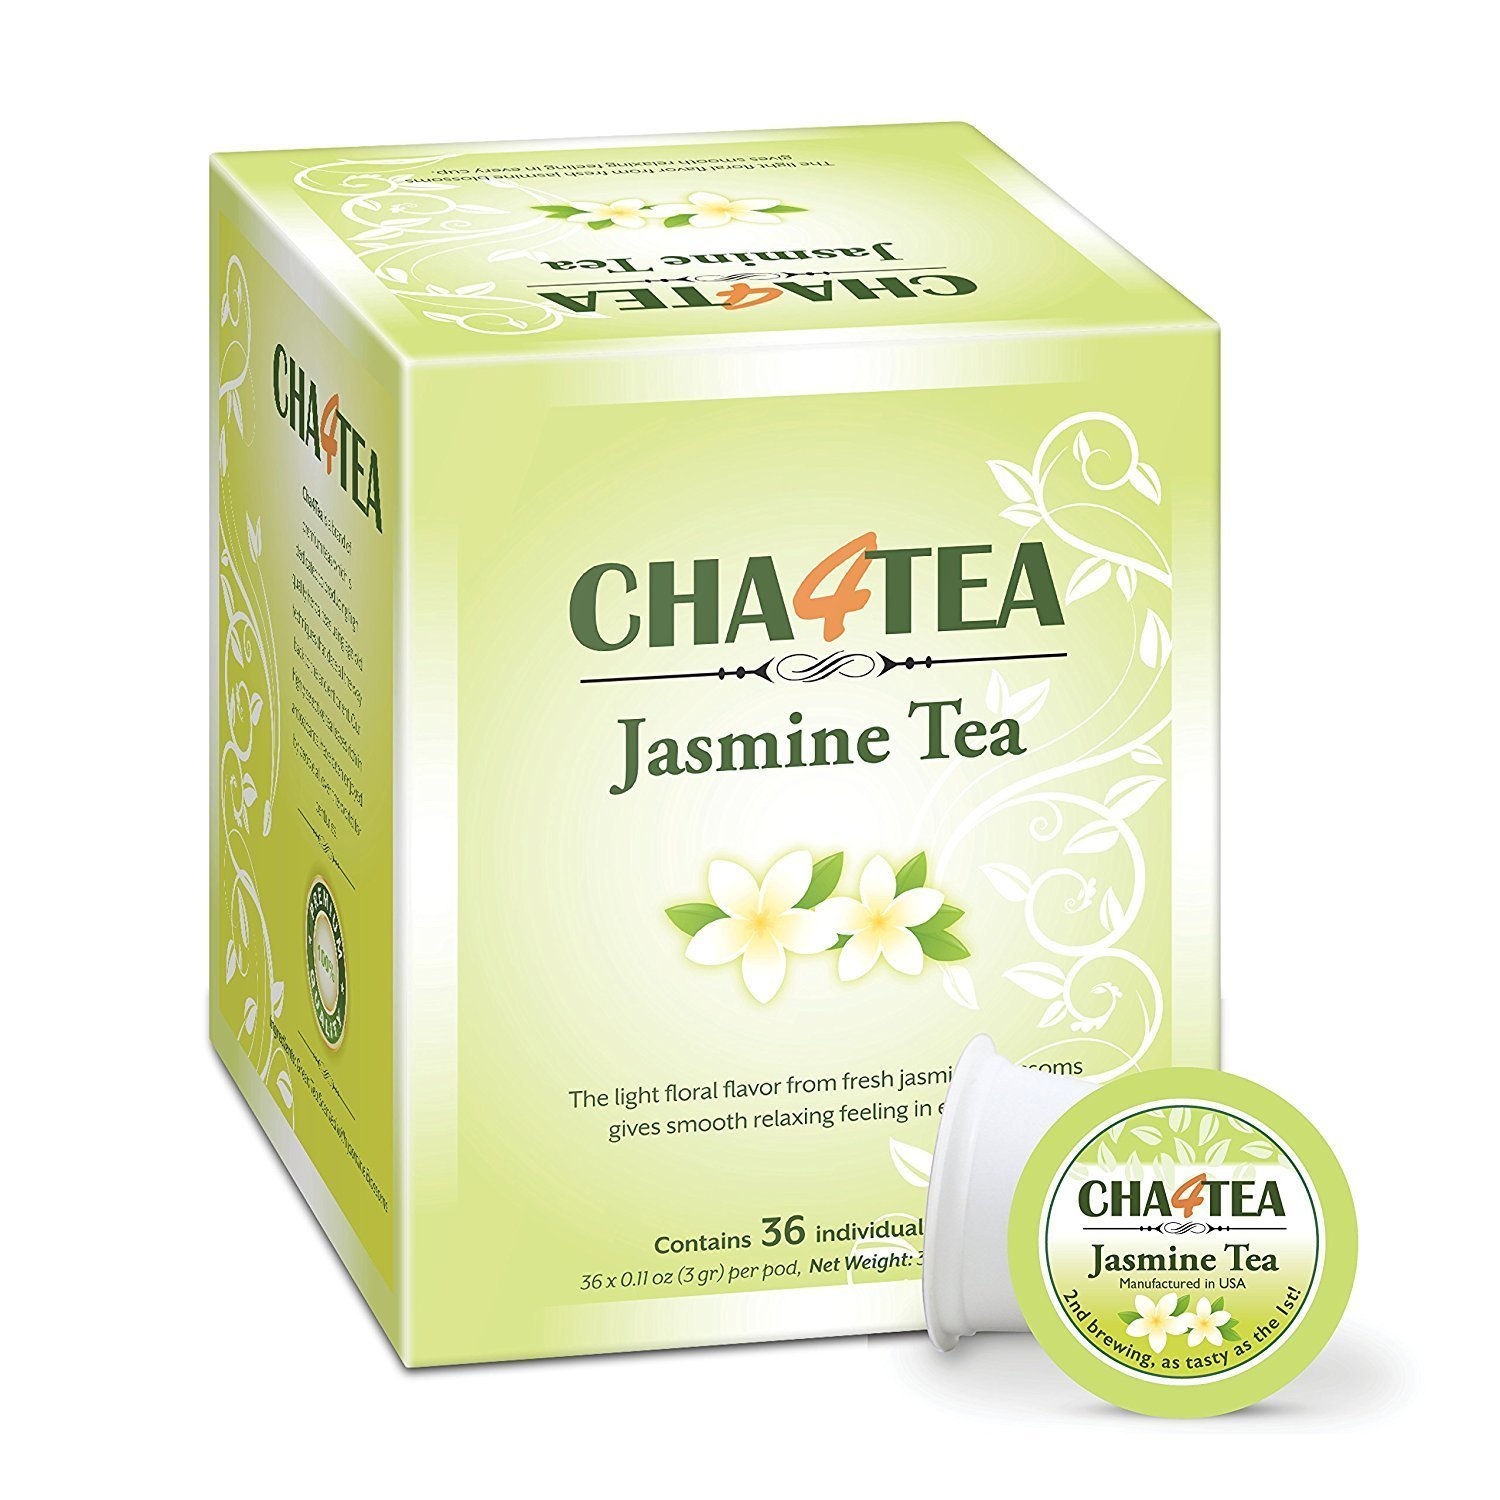 Cha4TEA 36-Count Max 60% OFF Jasmine Green Tea Keurig Free Shipping Cheap Bargain Gift K-Cups Pods for Brewer